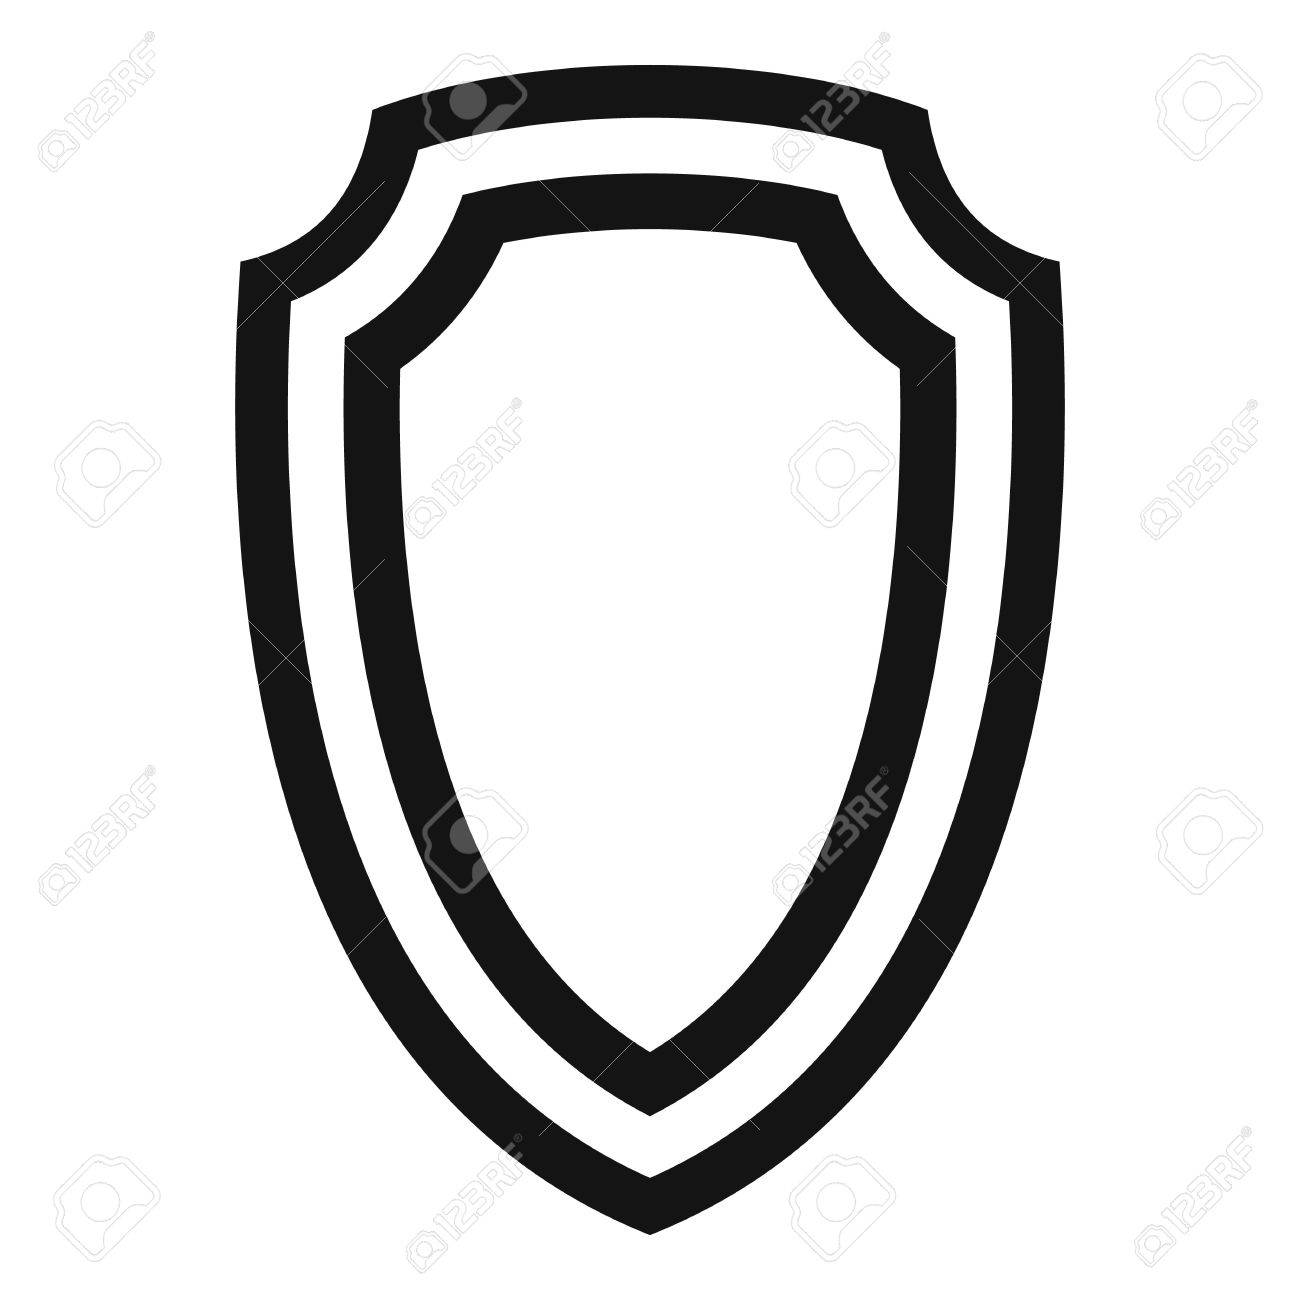 army shield icon simple illustration of army shield vector icon rh 123rf com police shield vector art shield artwork vector